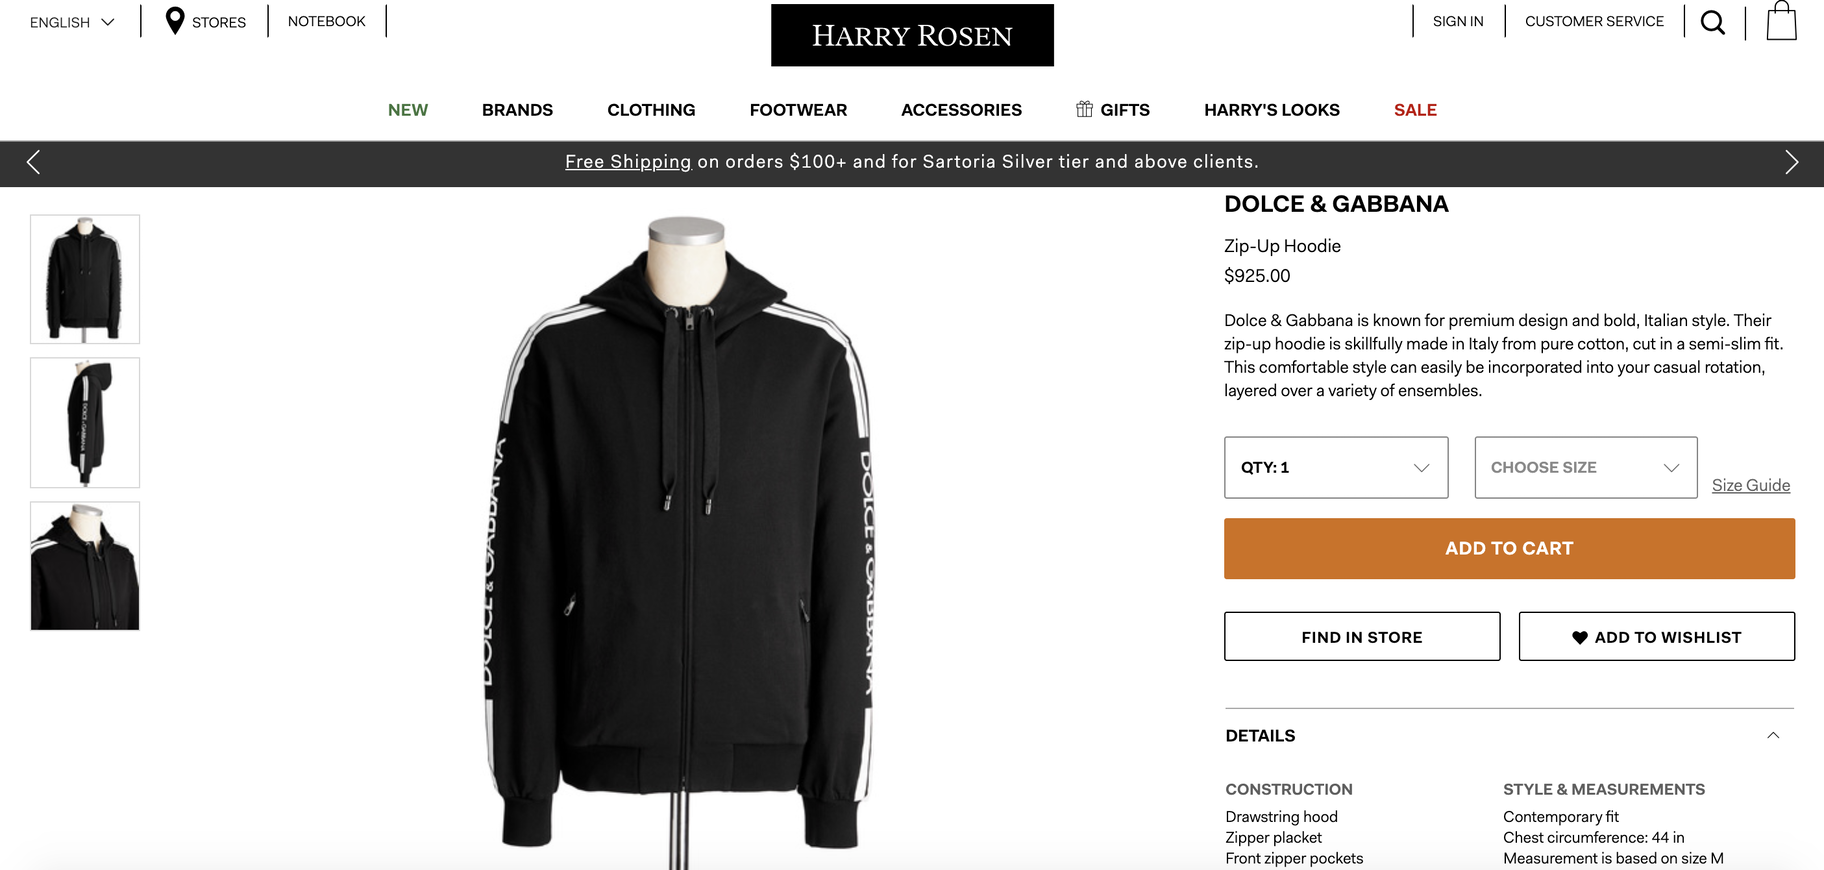 harry rosen product